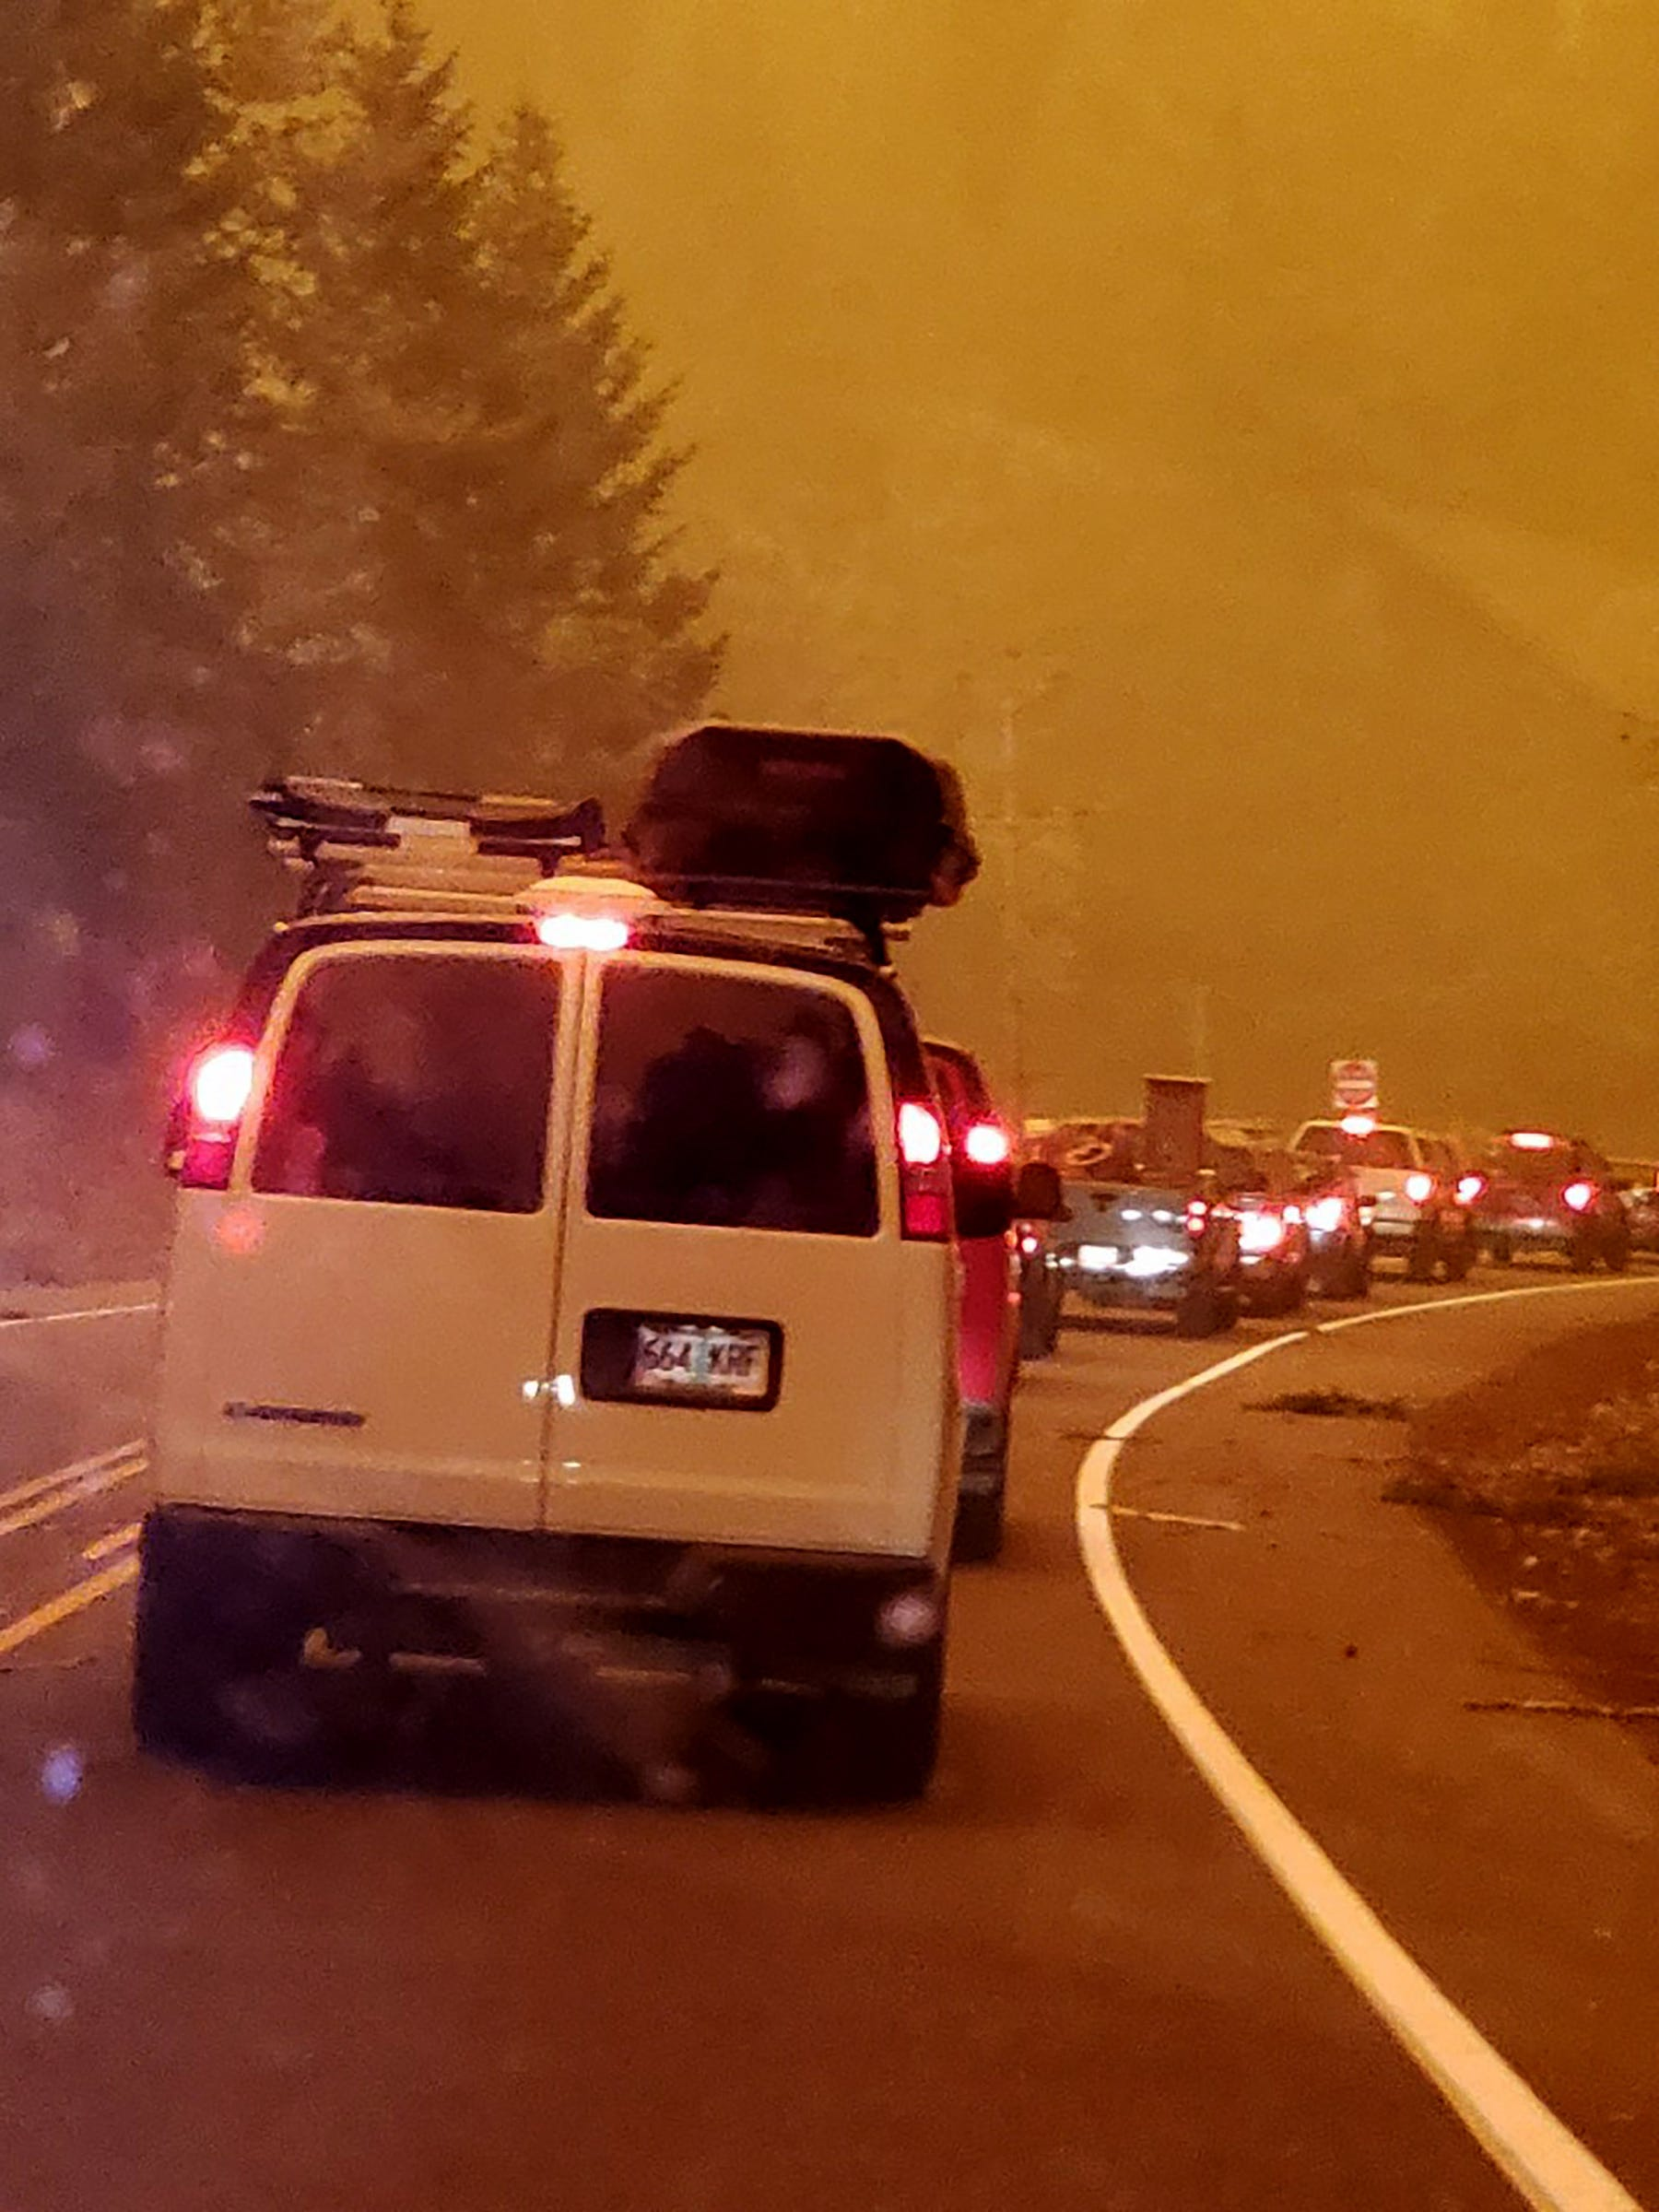 A series of random events save one couple from an approaching wildfire in Oregon